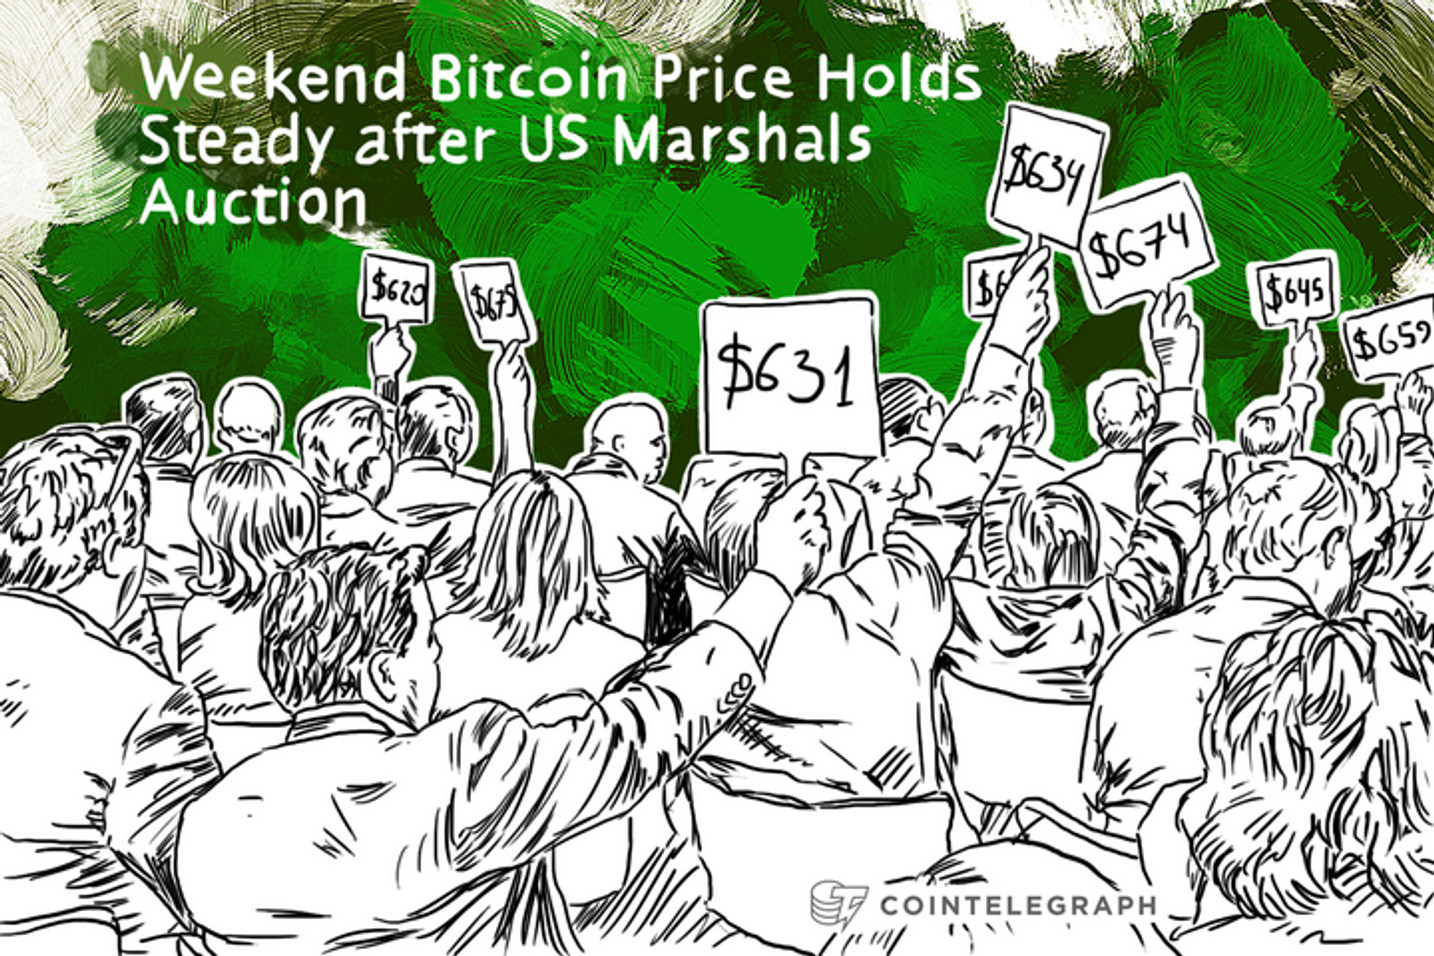 Weekend Bitcoin Price Holds Steady after US Marshals Auction